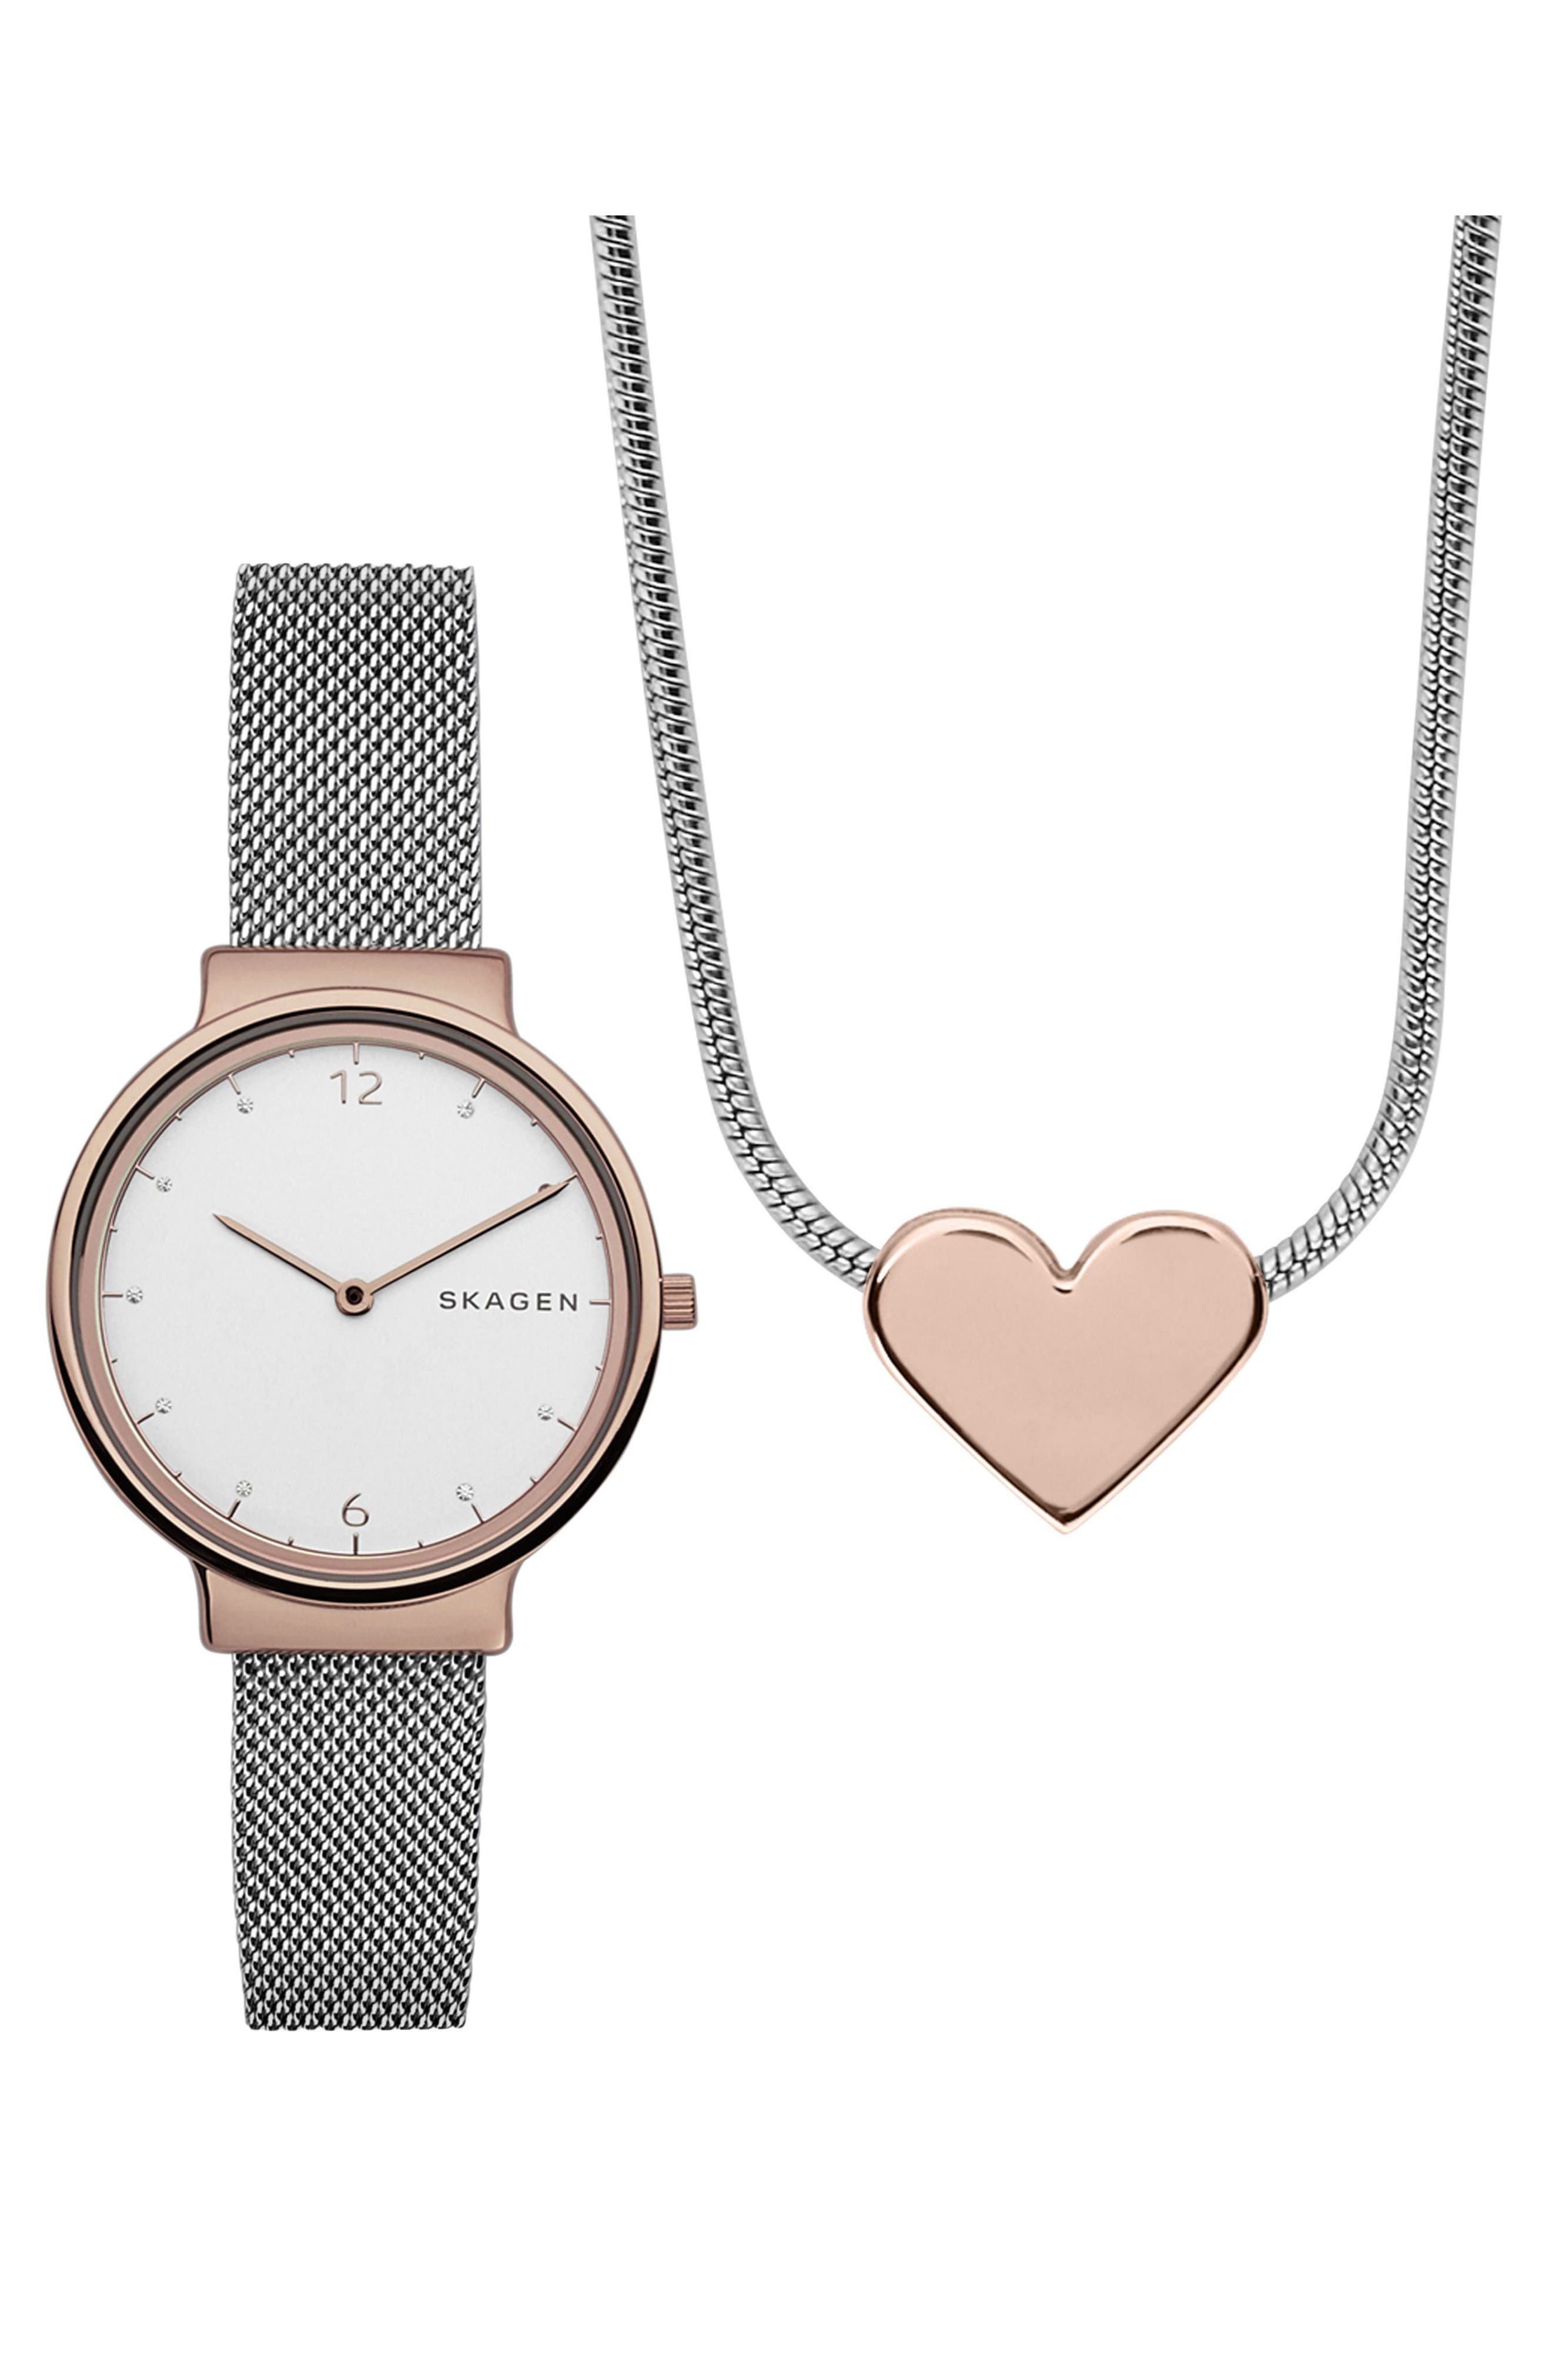 SKAGEN Ancher Leather Strap Watch & Necklace Set, 34mm